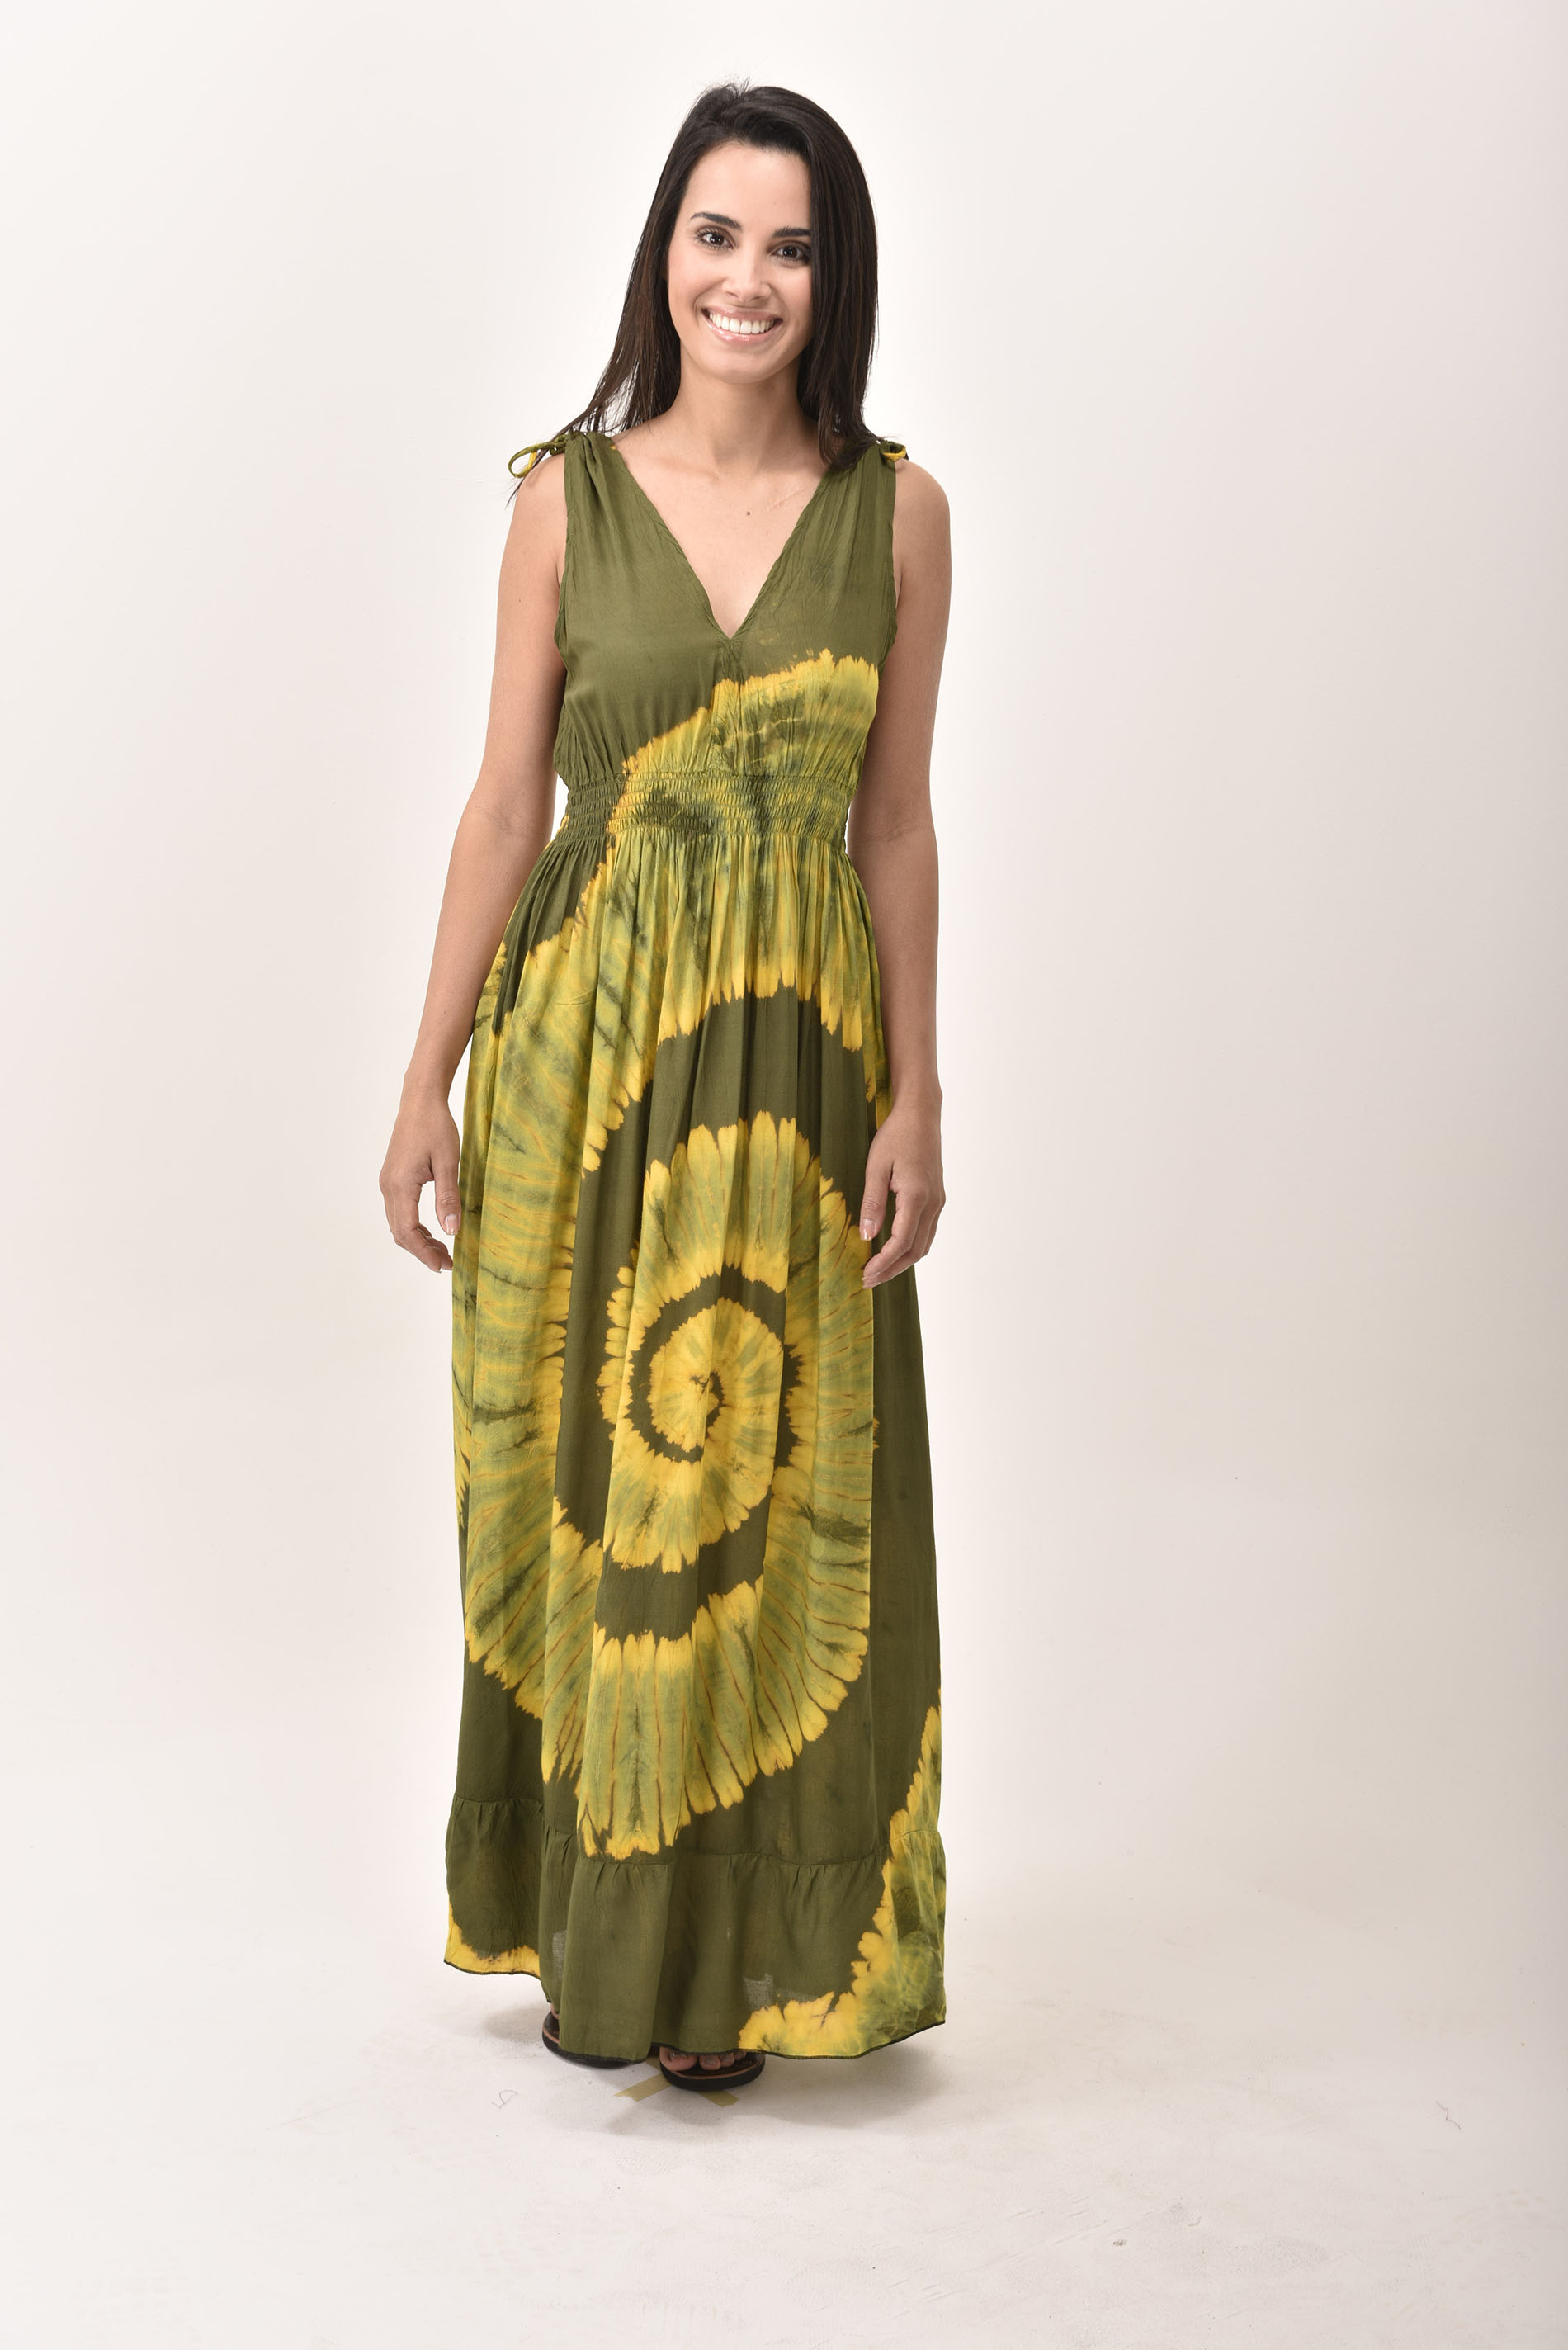 V-Neck Maxi Dress Hand Painted Tie Dye, Green